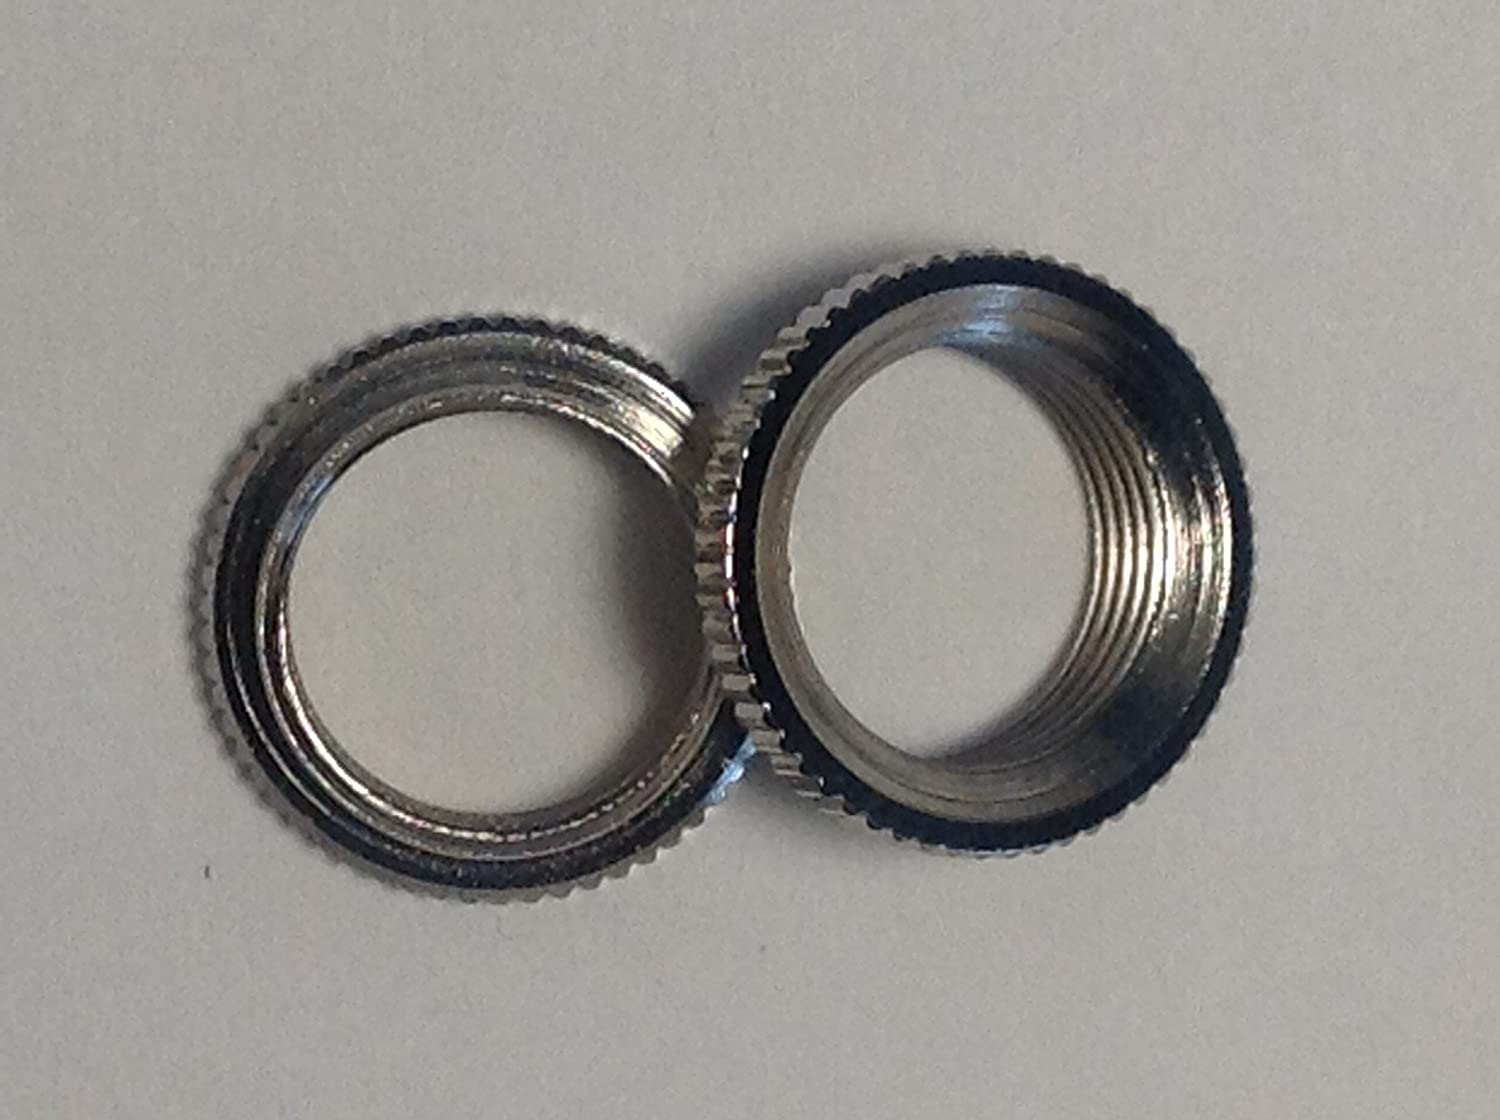 2 Fine Shouldered Deep Toggle Switch Nut Nickel For Switchcraft Made in USA AXE587